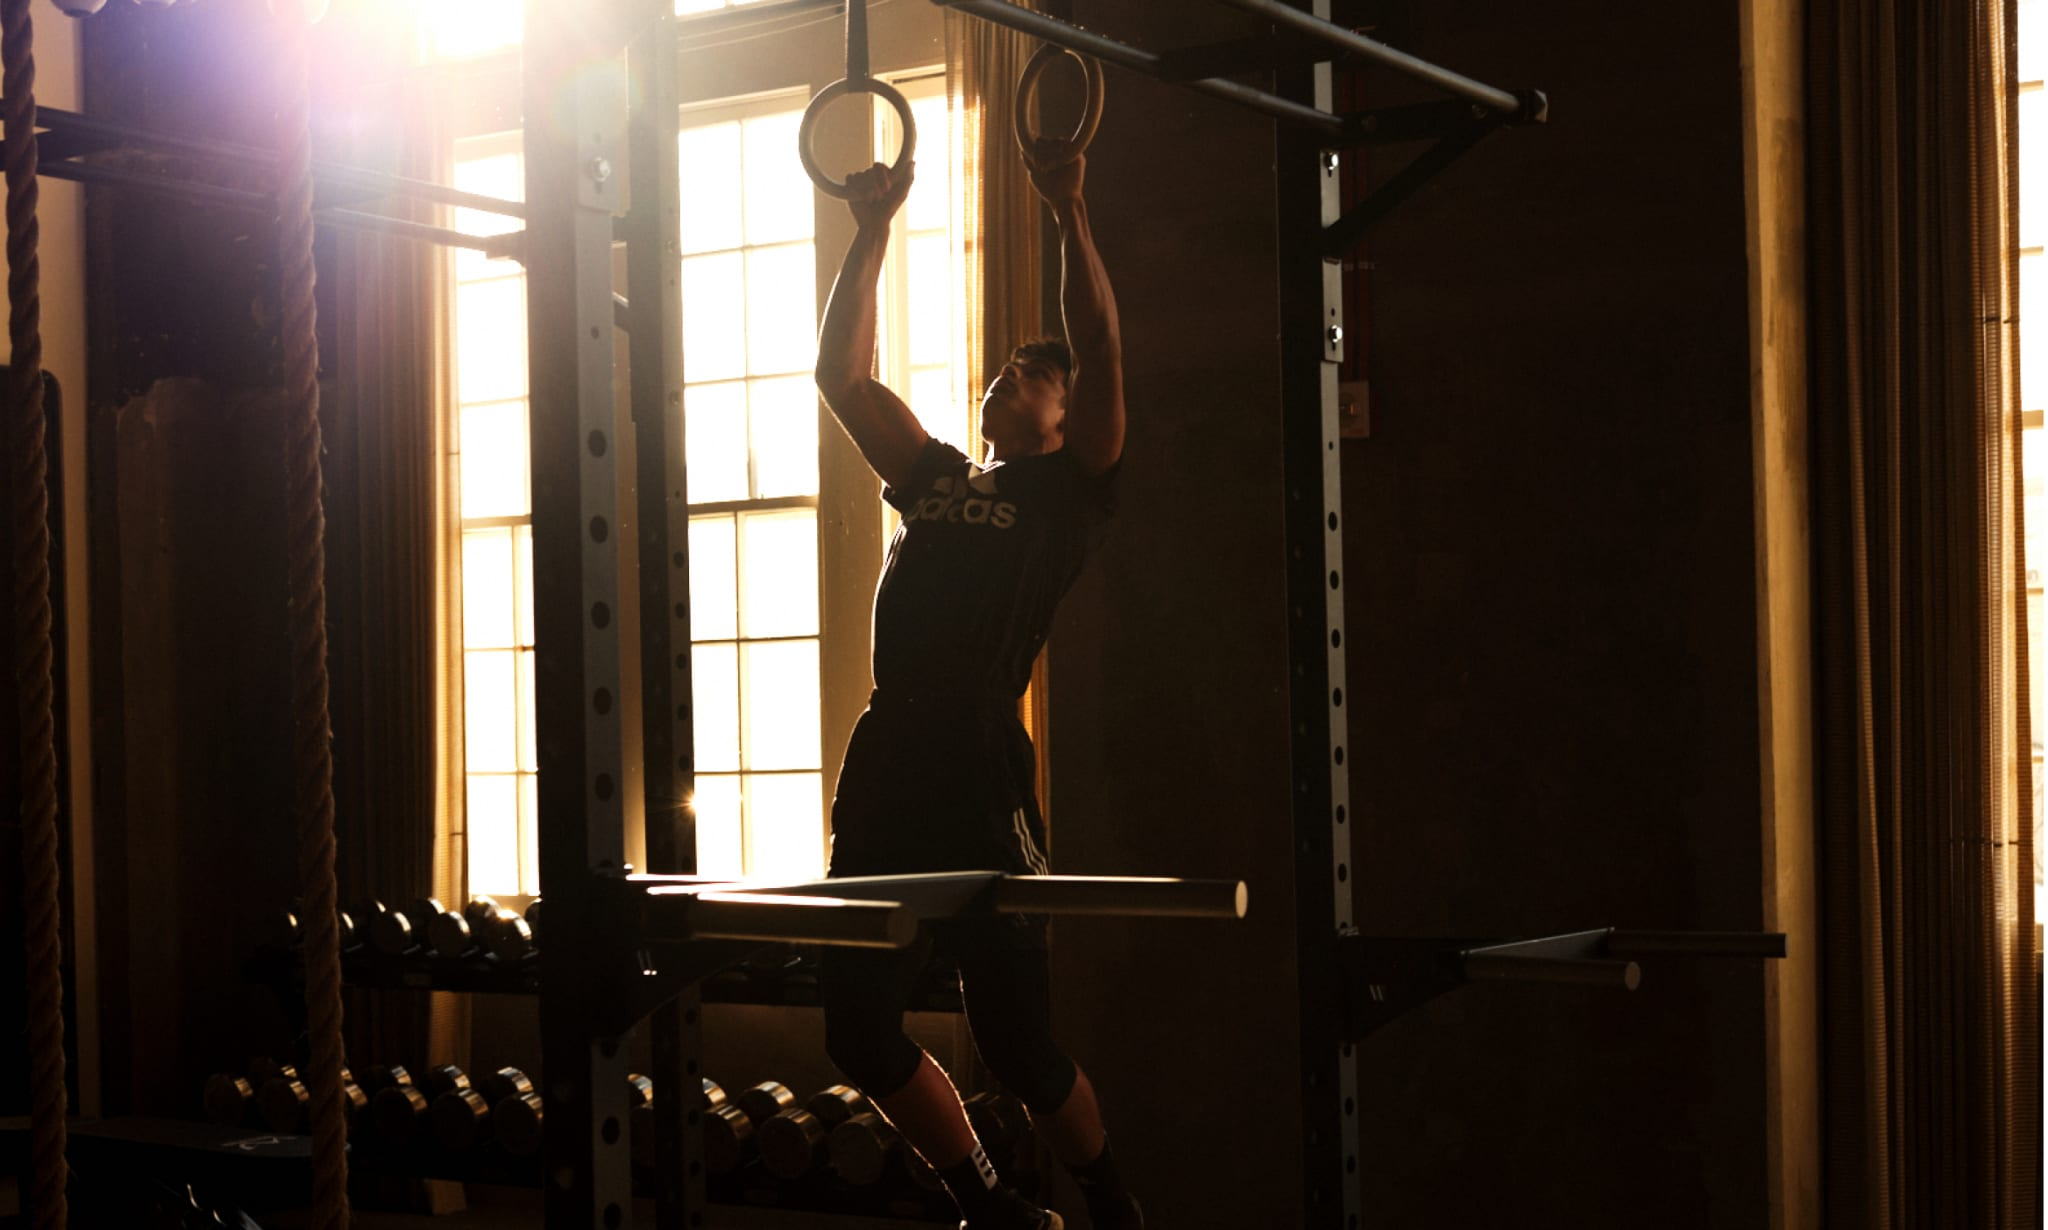 A man pulls himself up on rings in a gym.